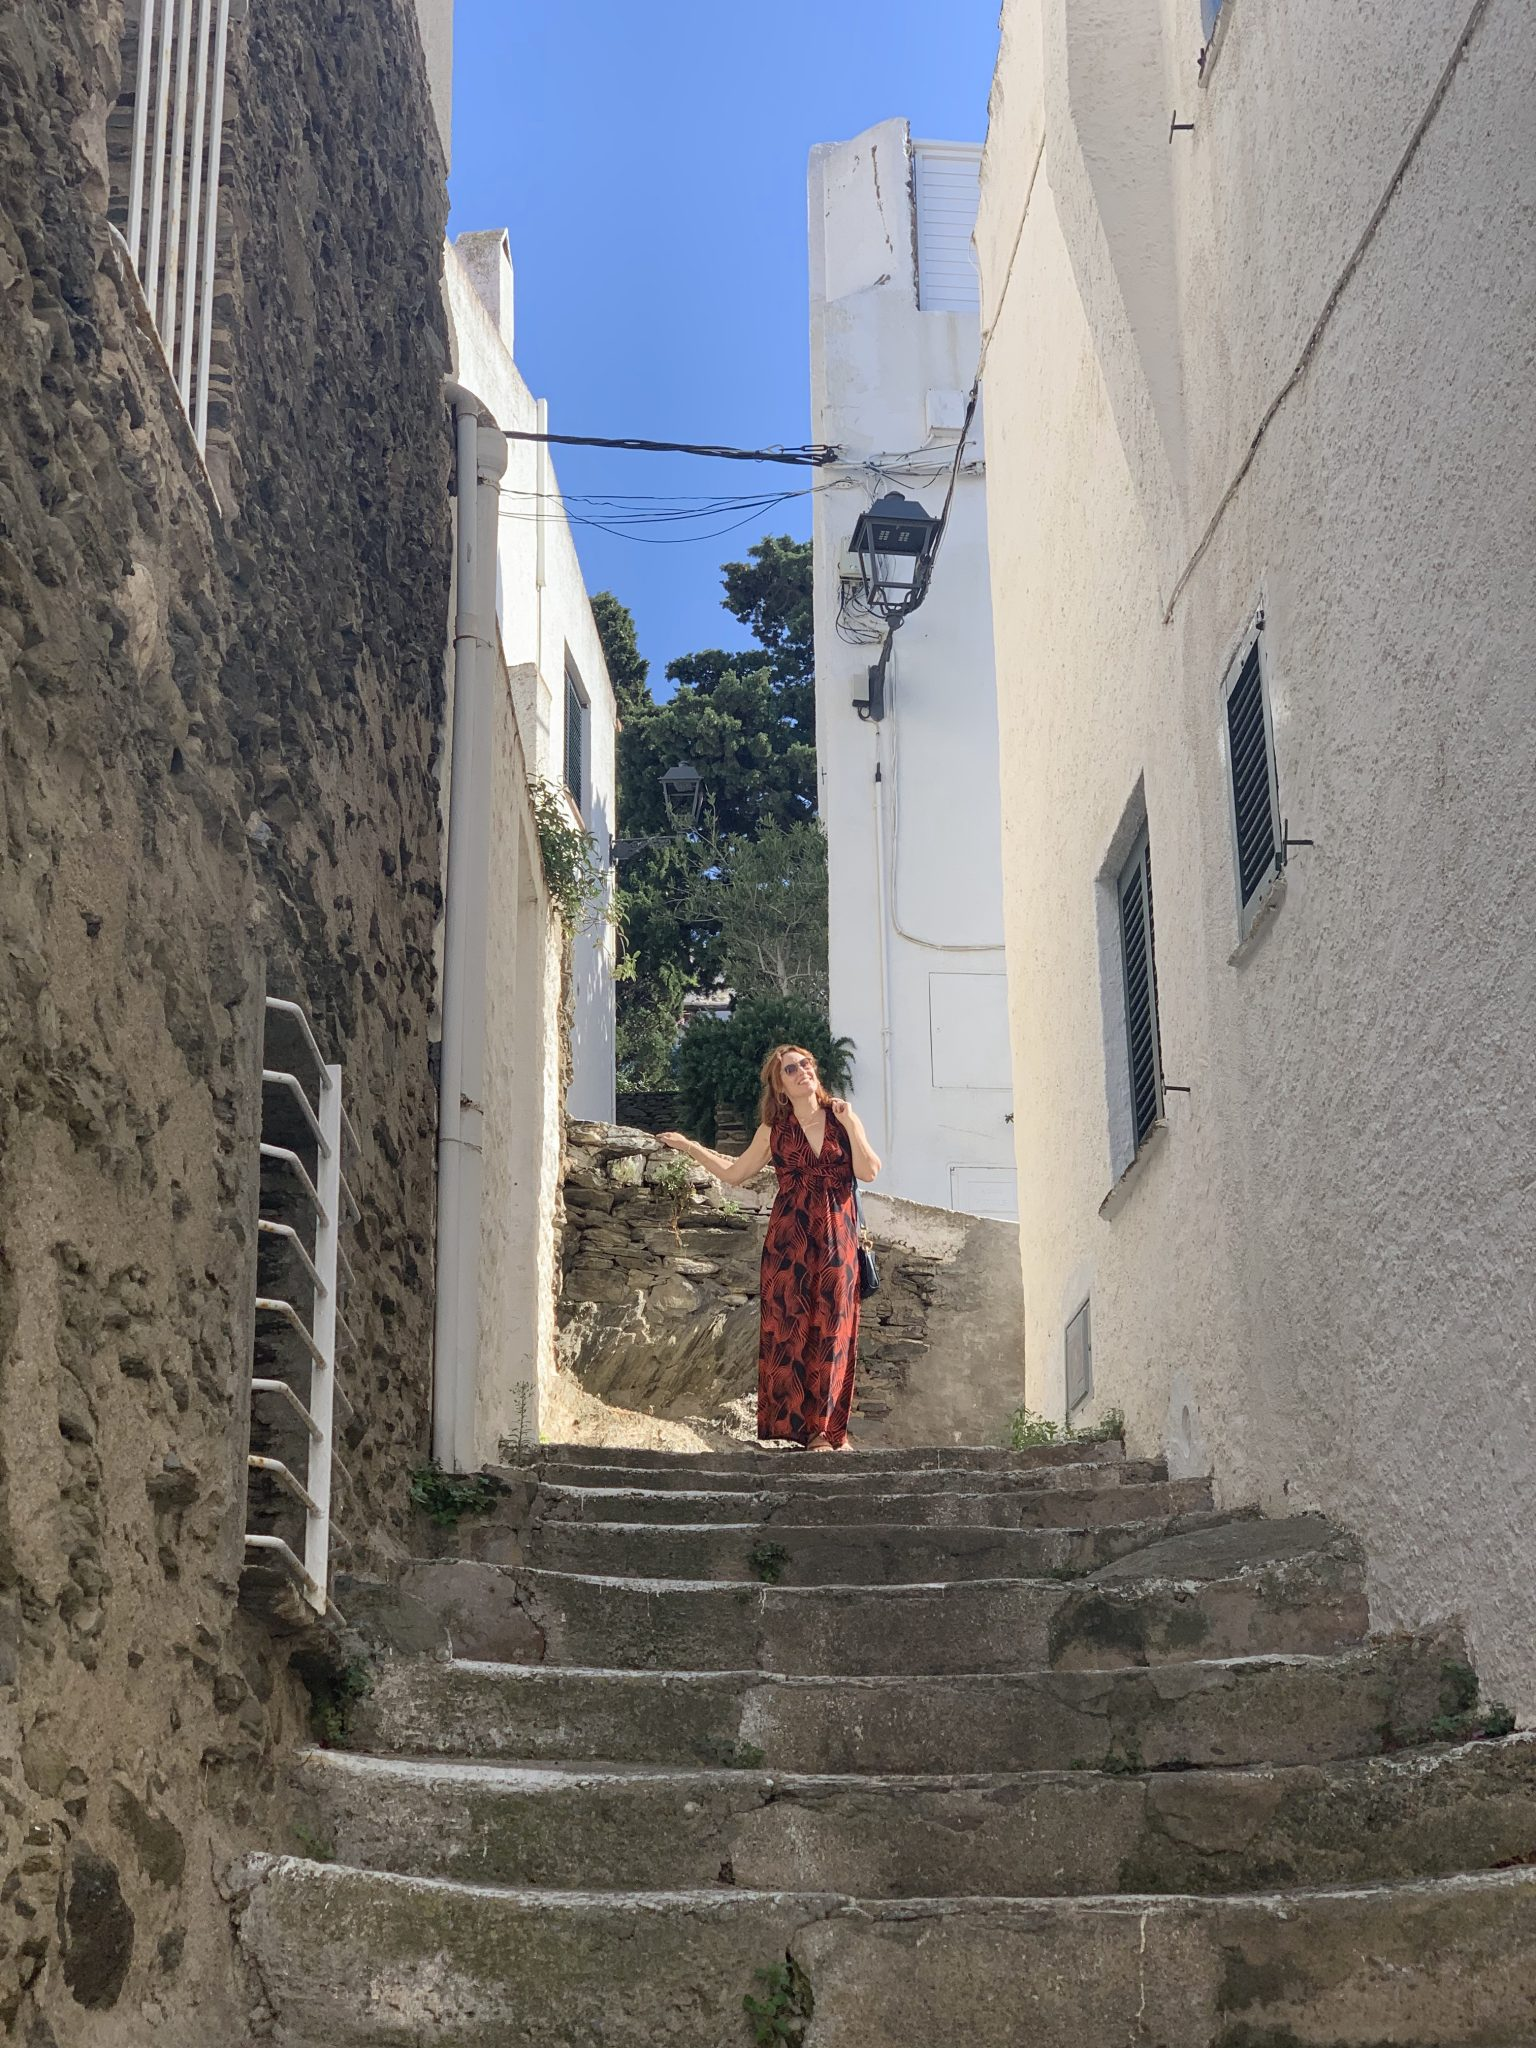 Woman stands on top of narrow street stairs wearing a red dress.